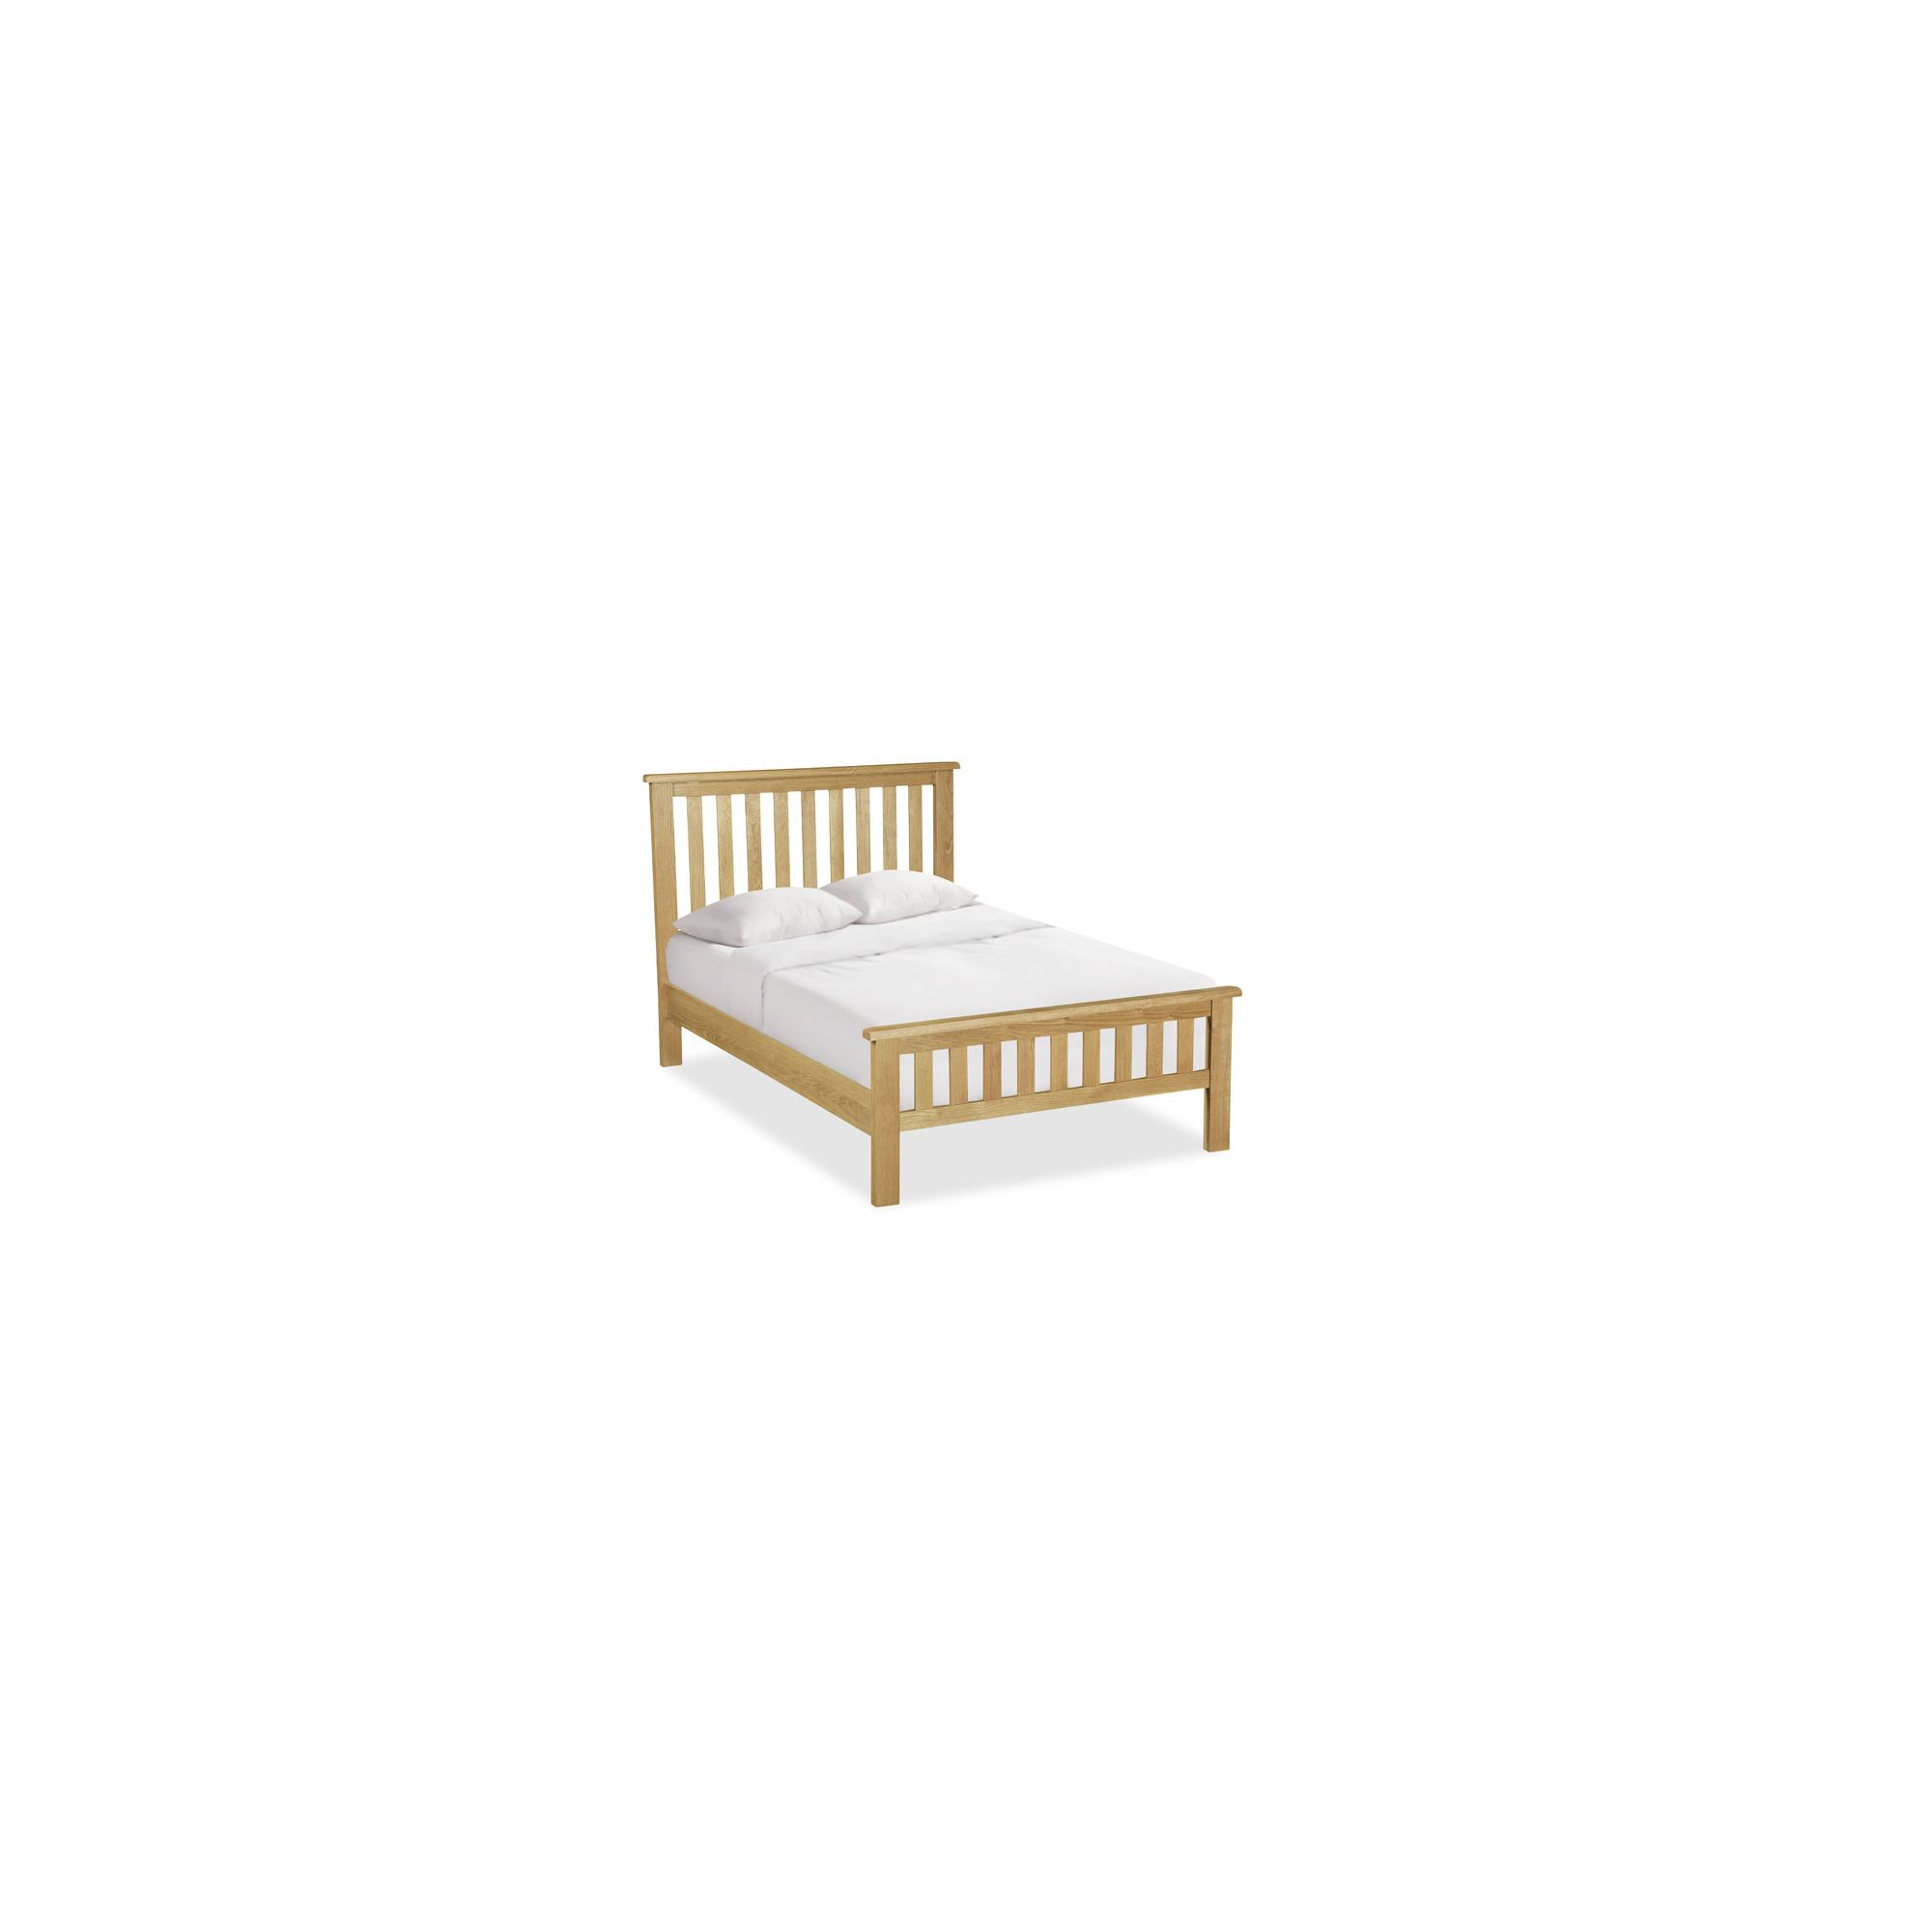 Alterton Furniture Pemberley Petite Slatted Bed - Small double at Tesco Direct